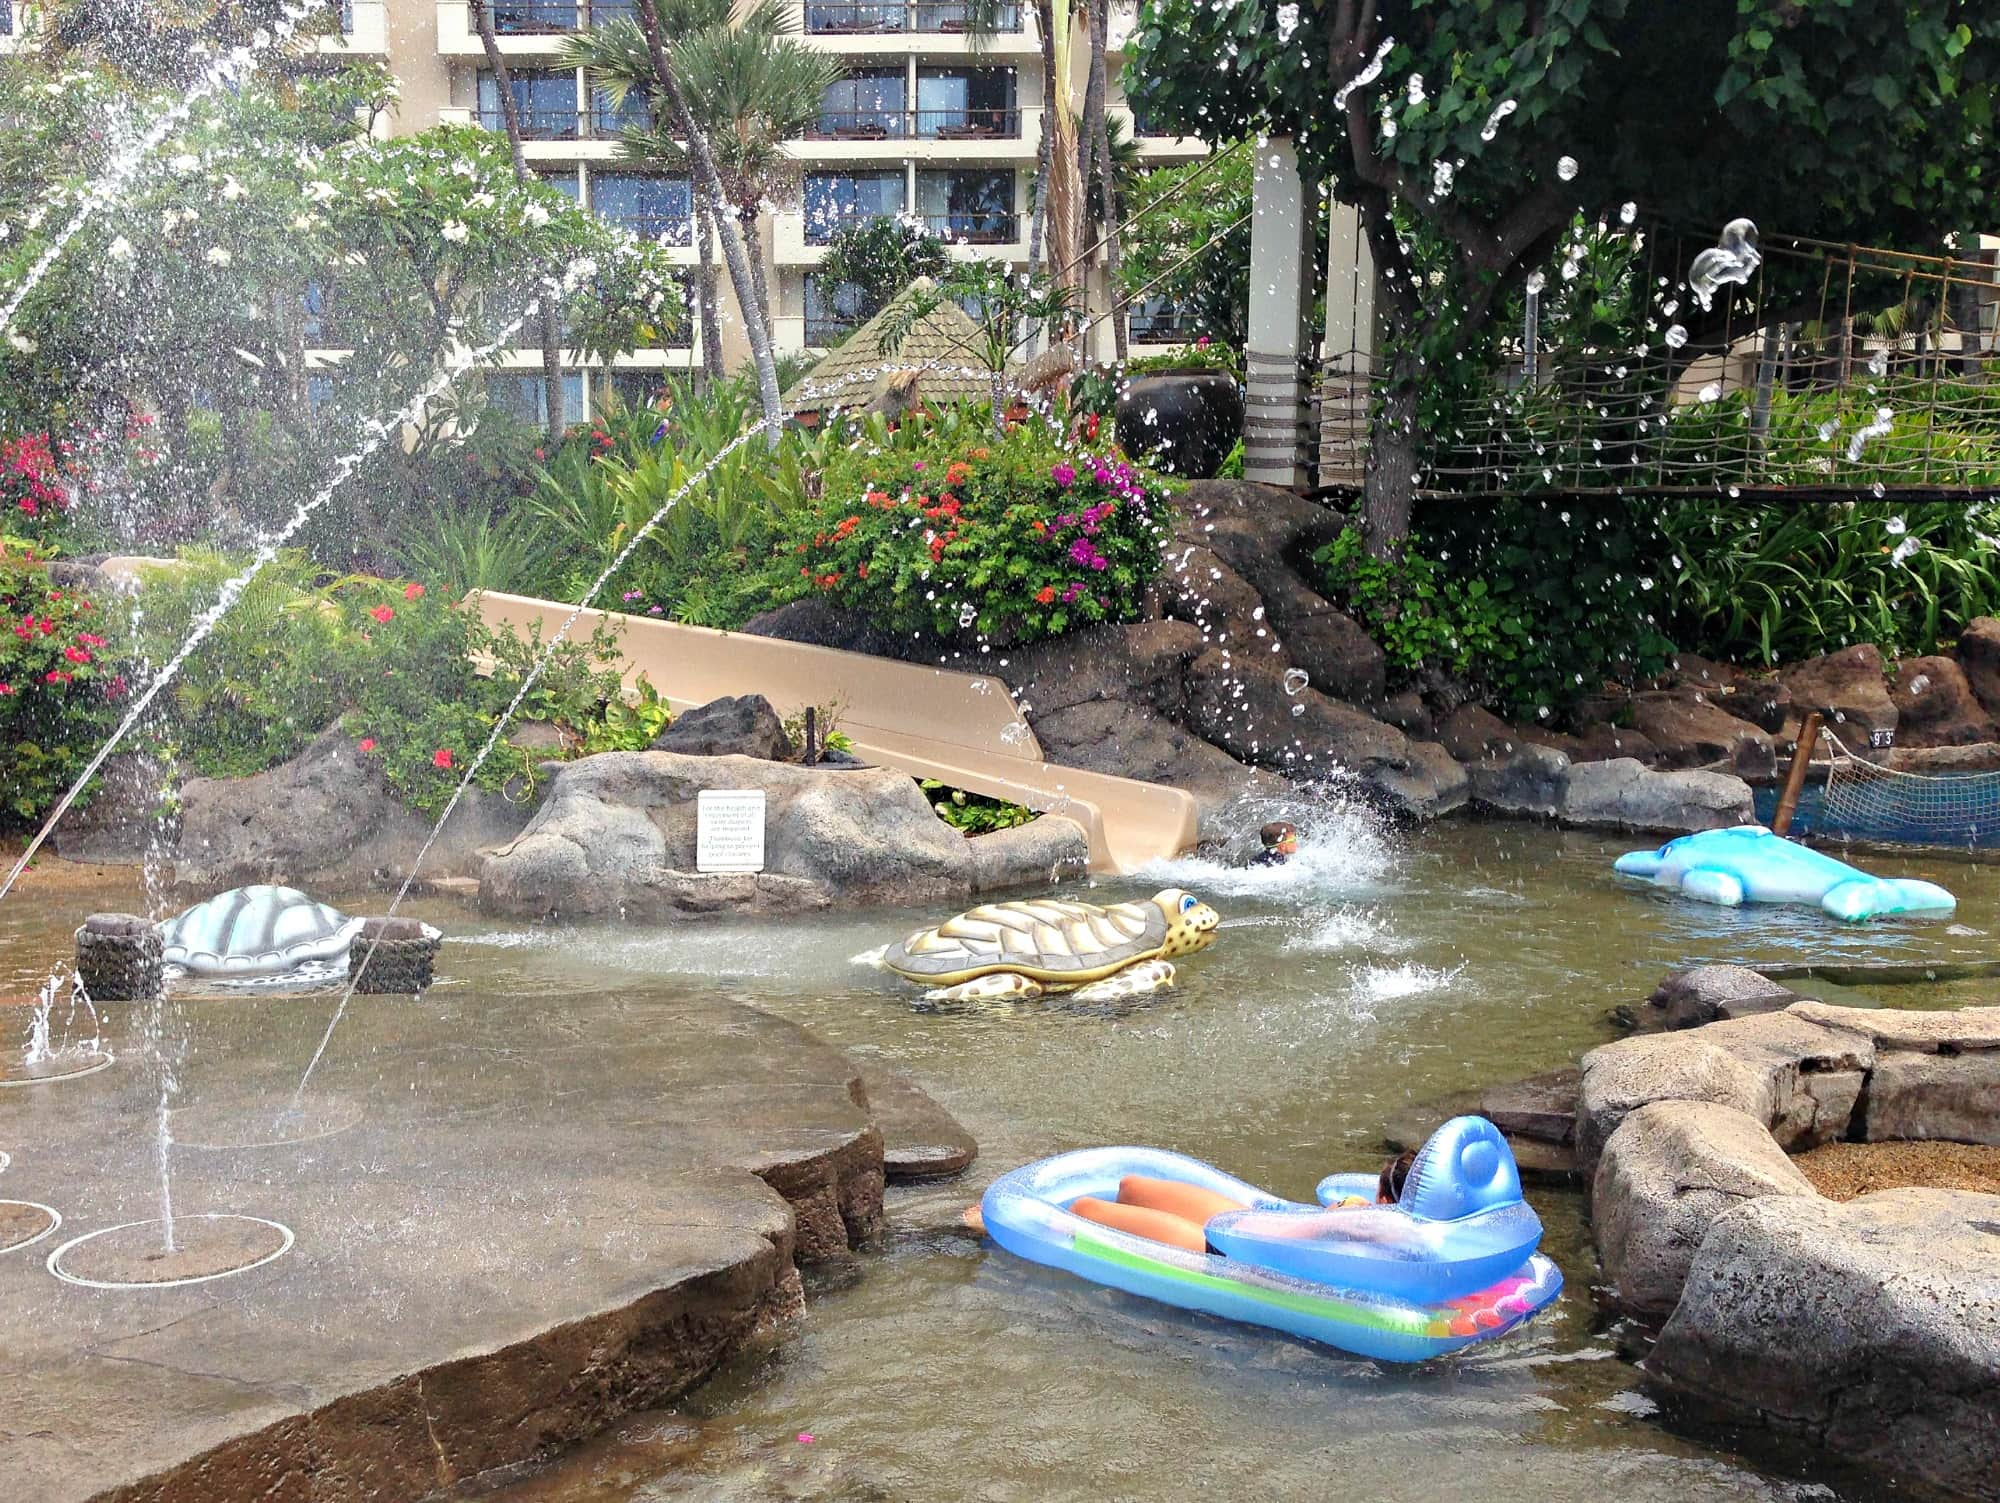 Keiki Lagoon at Hyatt Regency Maui with kids